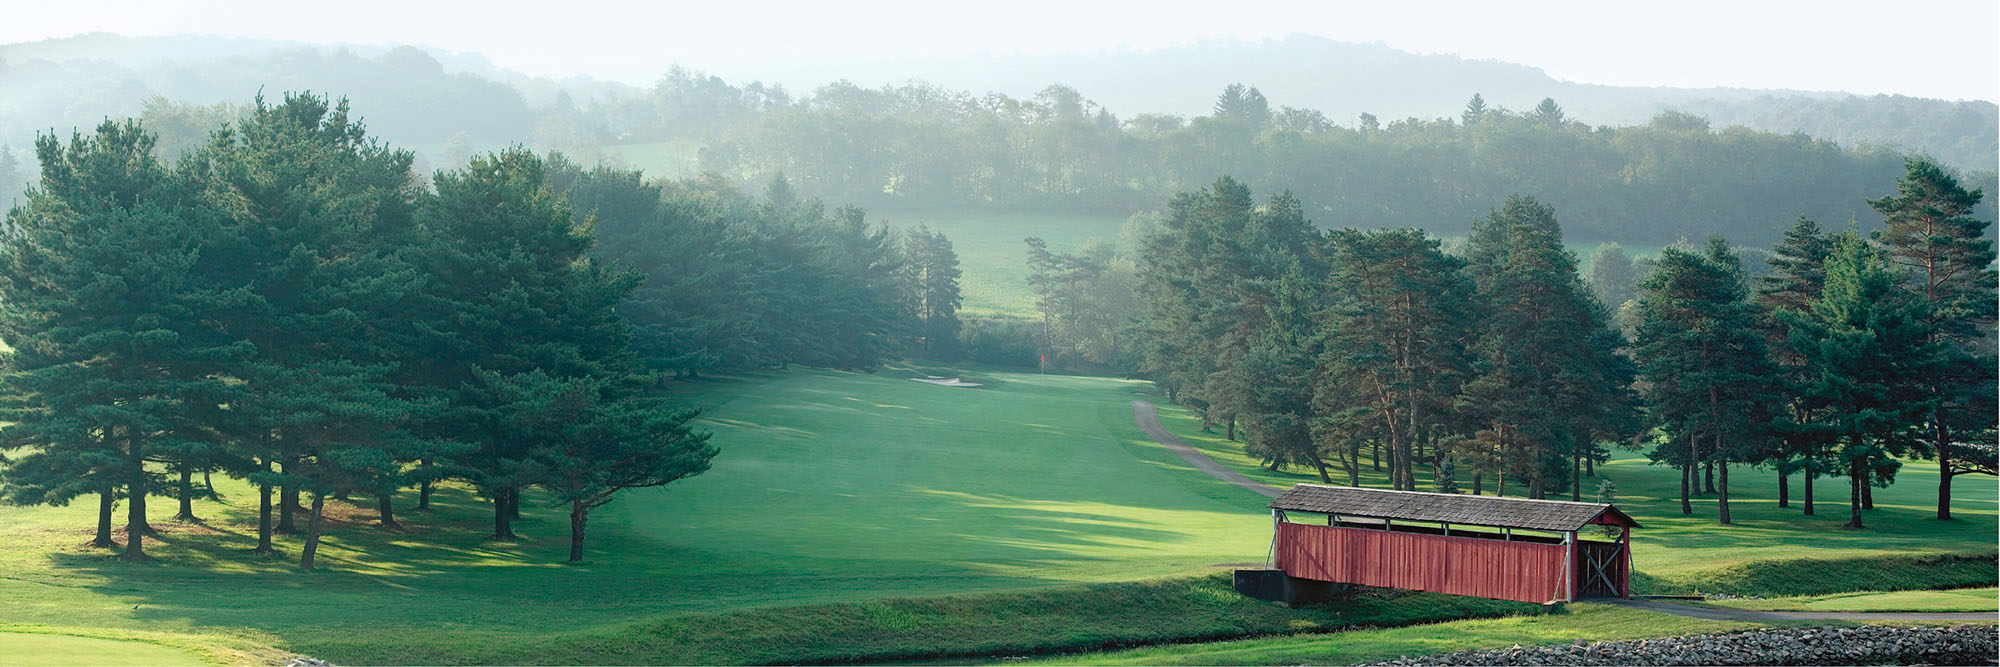 Golf Course Image - Latrobe No. 11